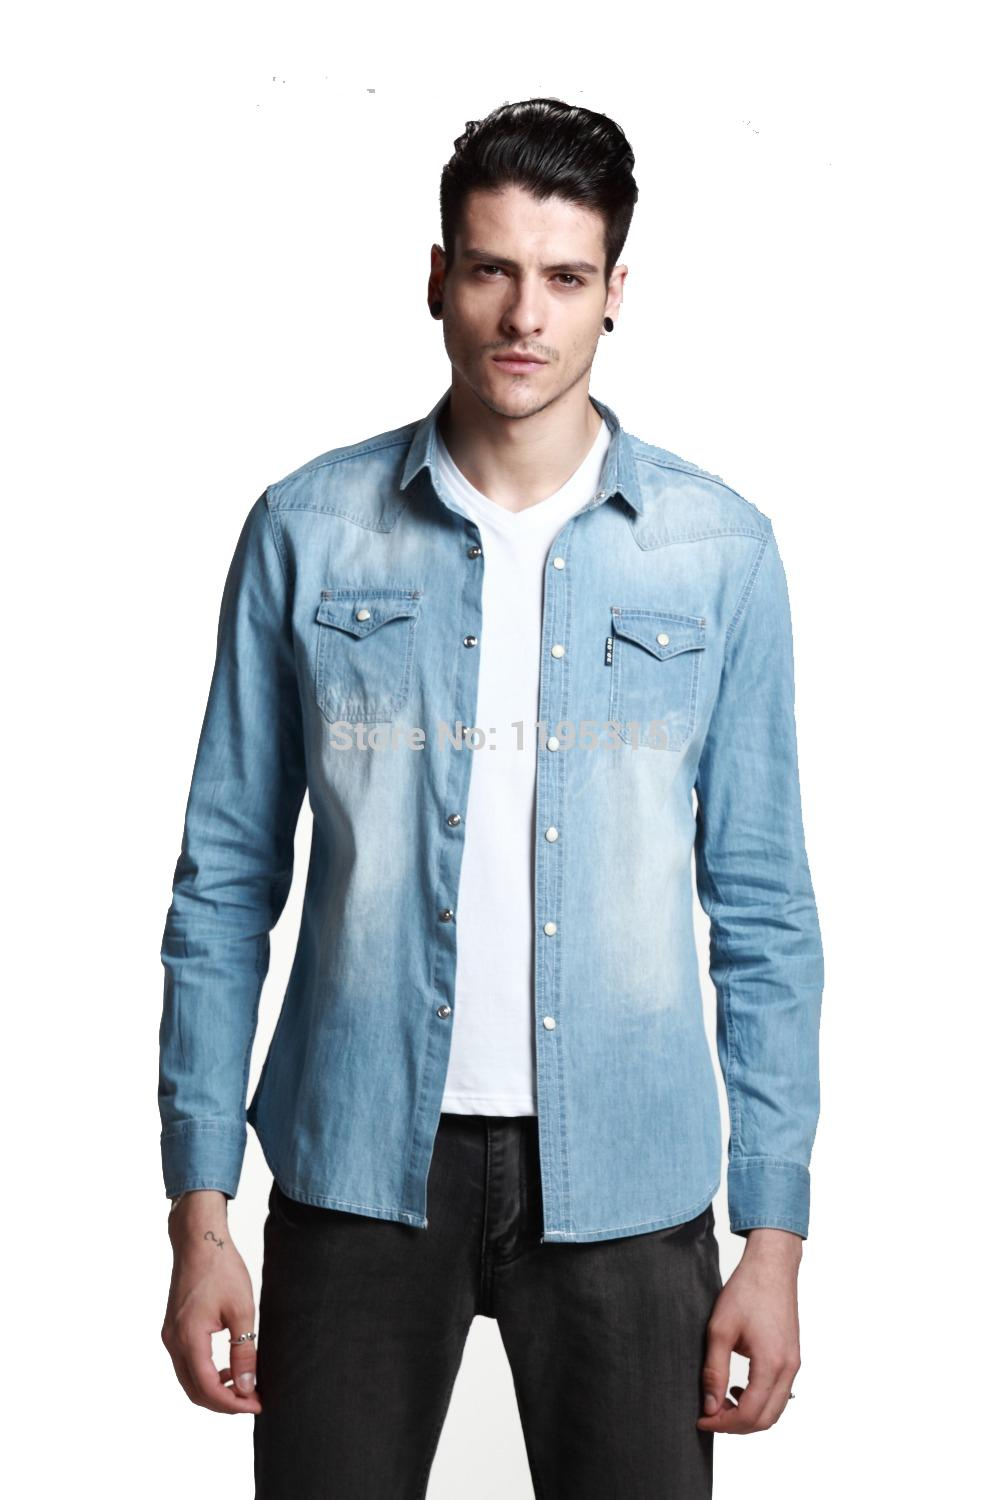 Shirt Designs For Men Party Wear The